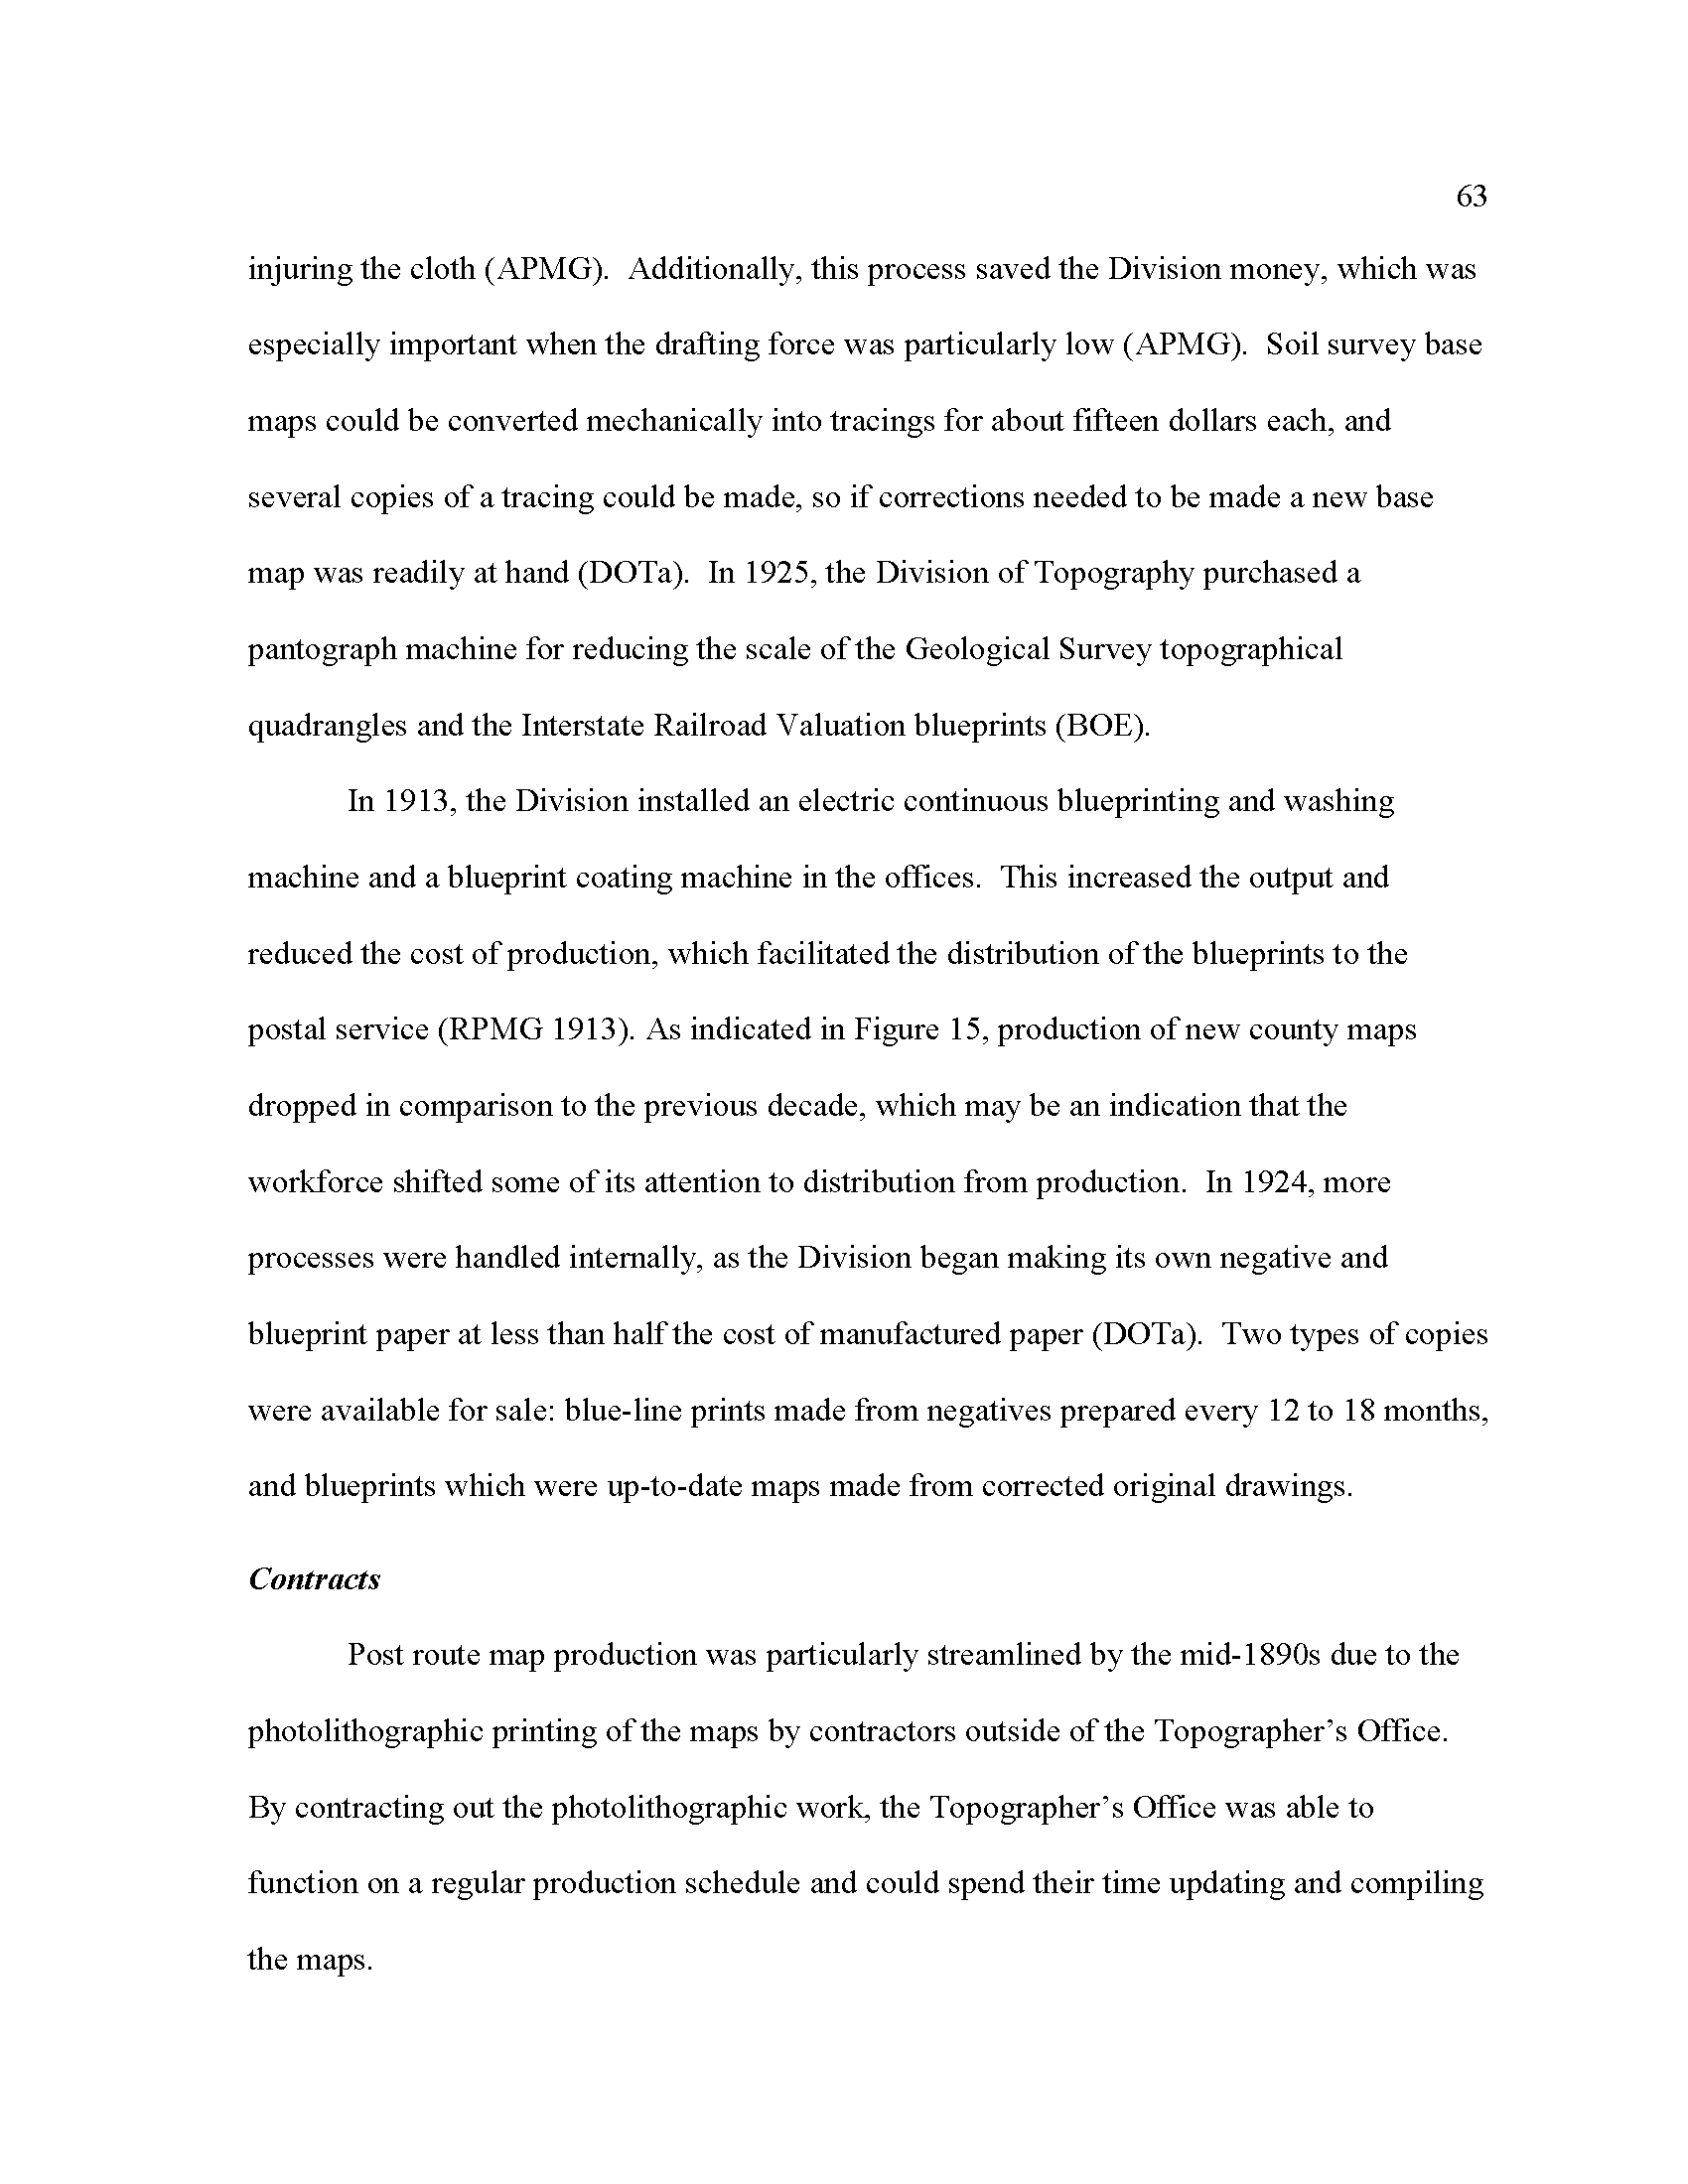 Thesis Final_Page_067.png